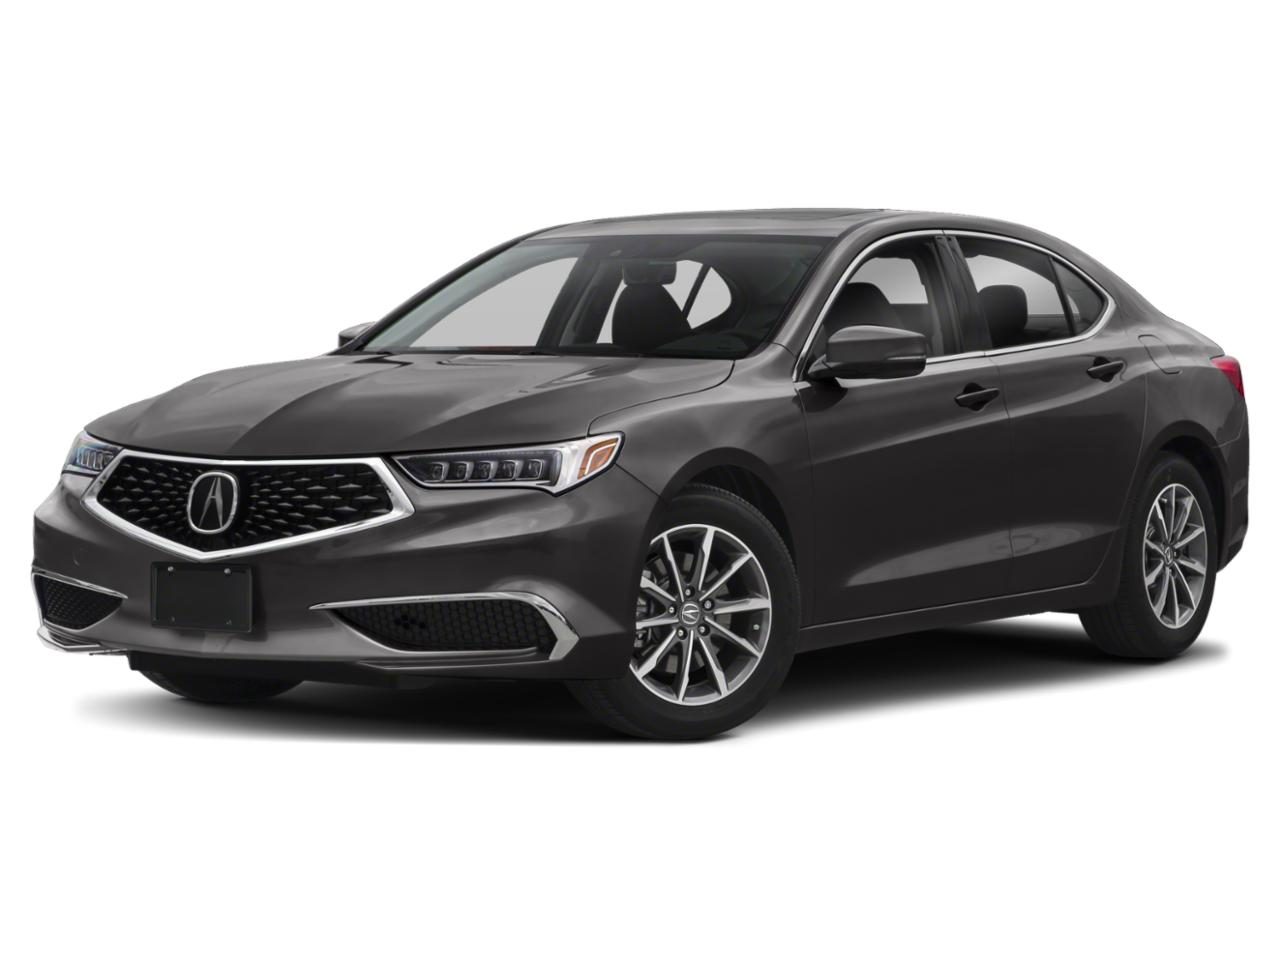 2020 Acura TLX Vehicle Photo in Terryville, CT 06786